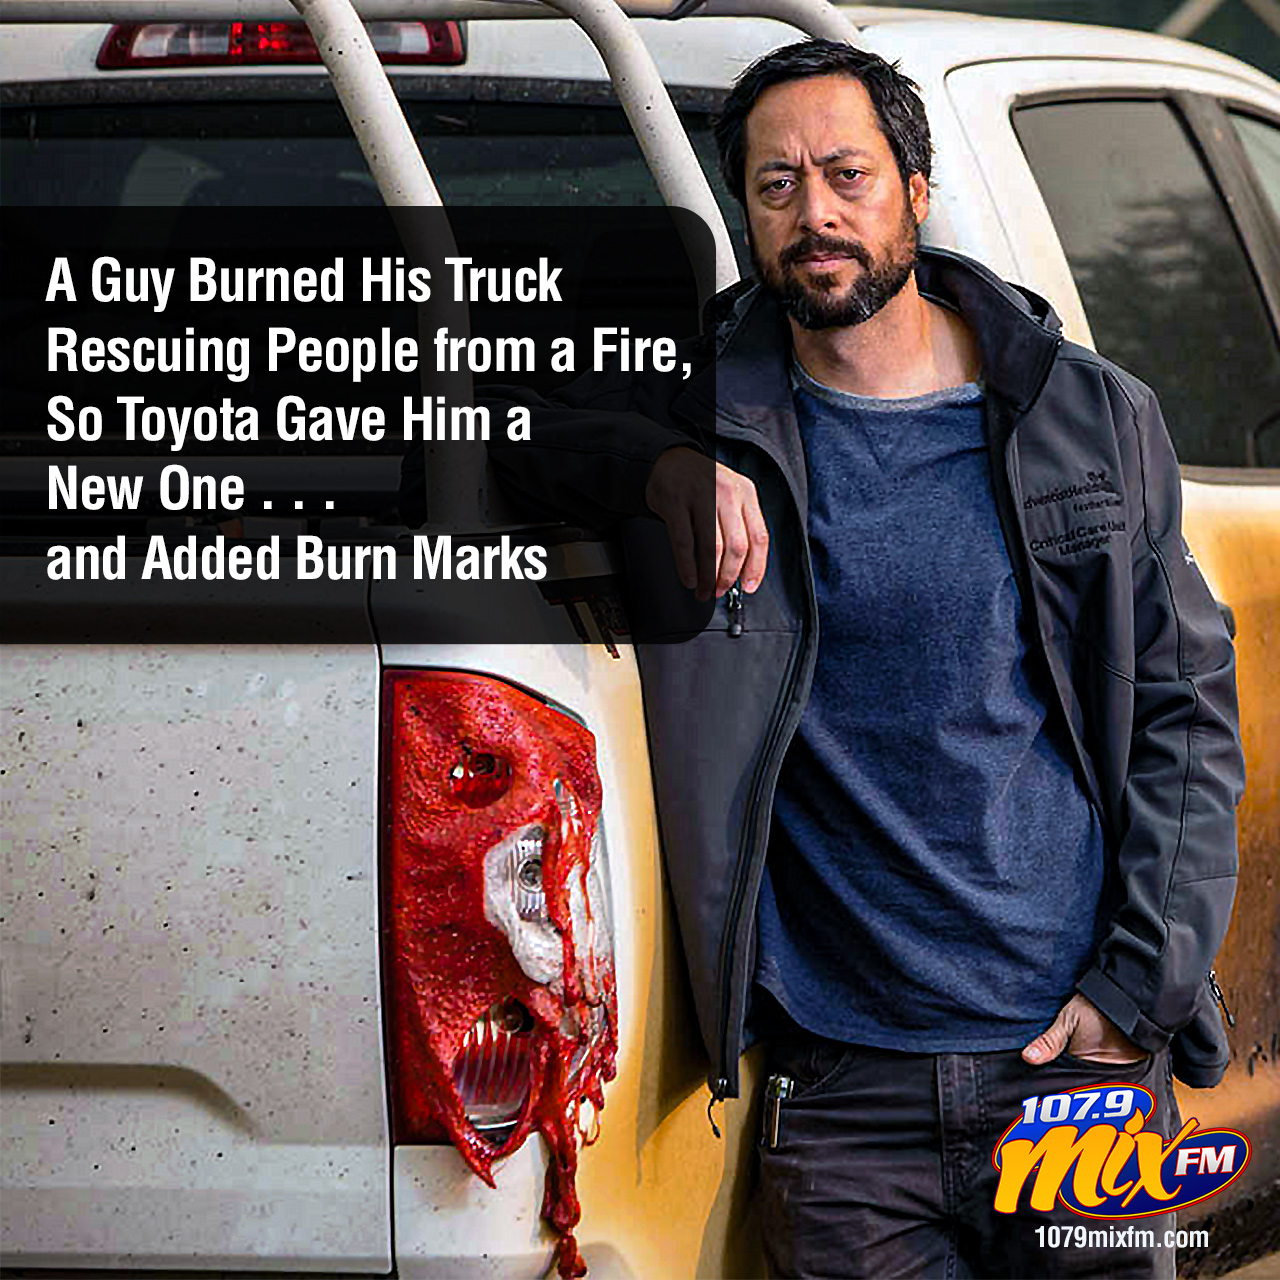 A Guy Burned His Truck Rescuing People from a Fire, So Toyota Gave Him a New One . . . and Added Burn Marks